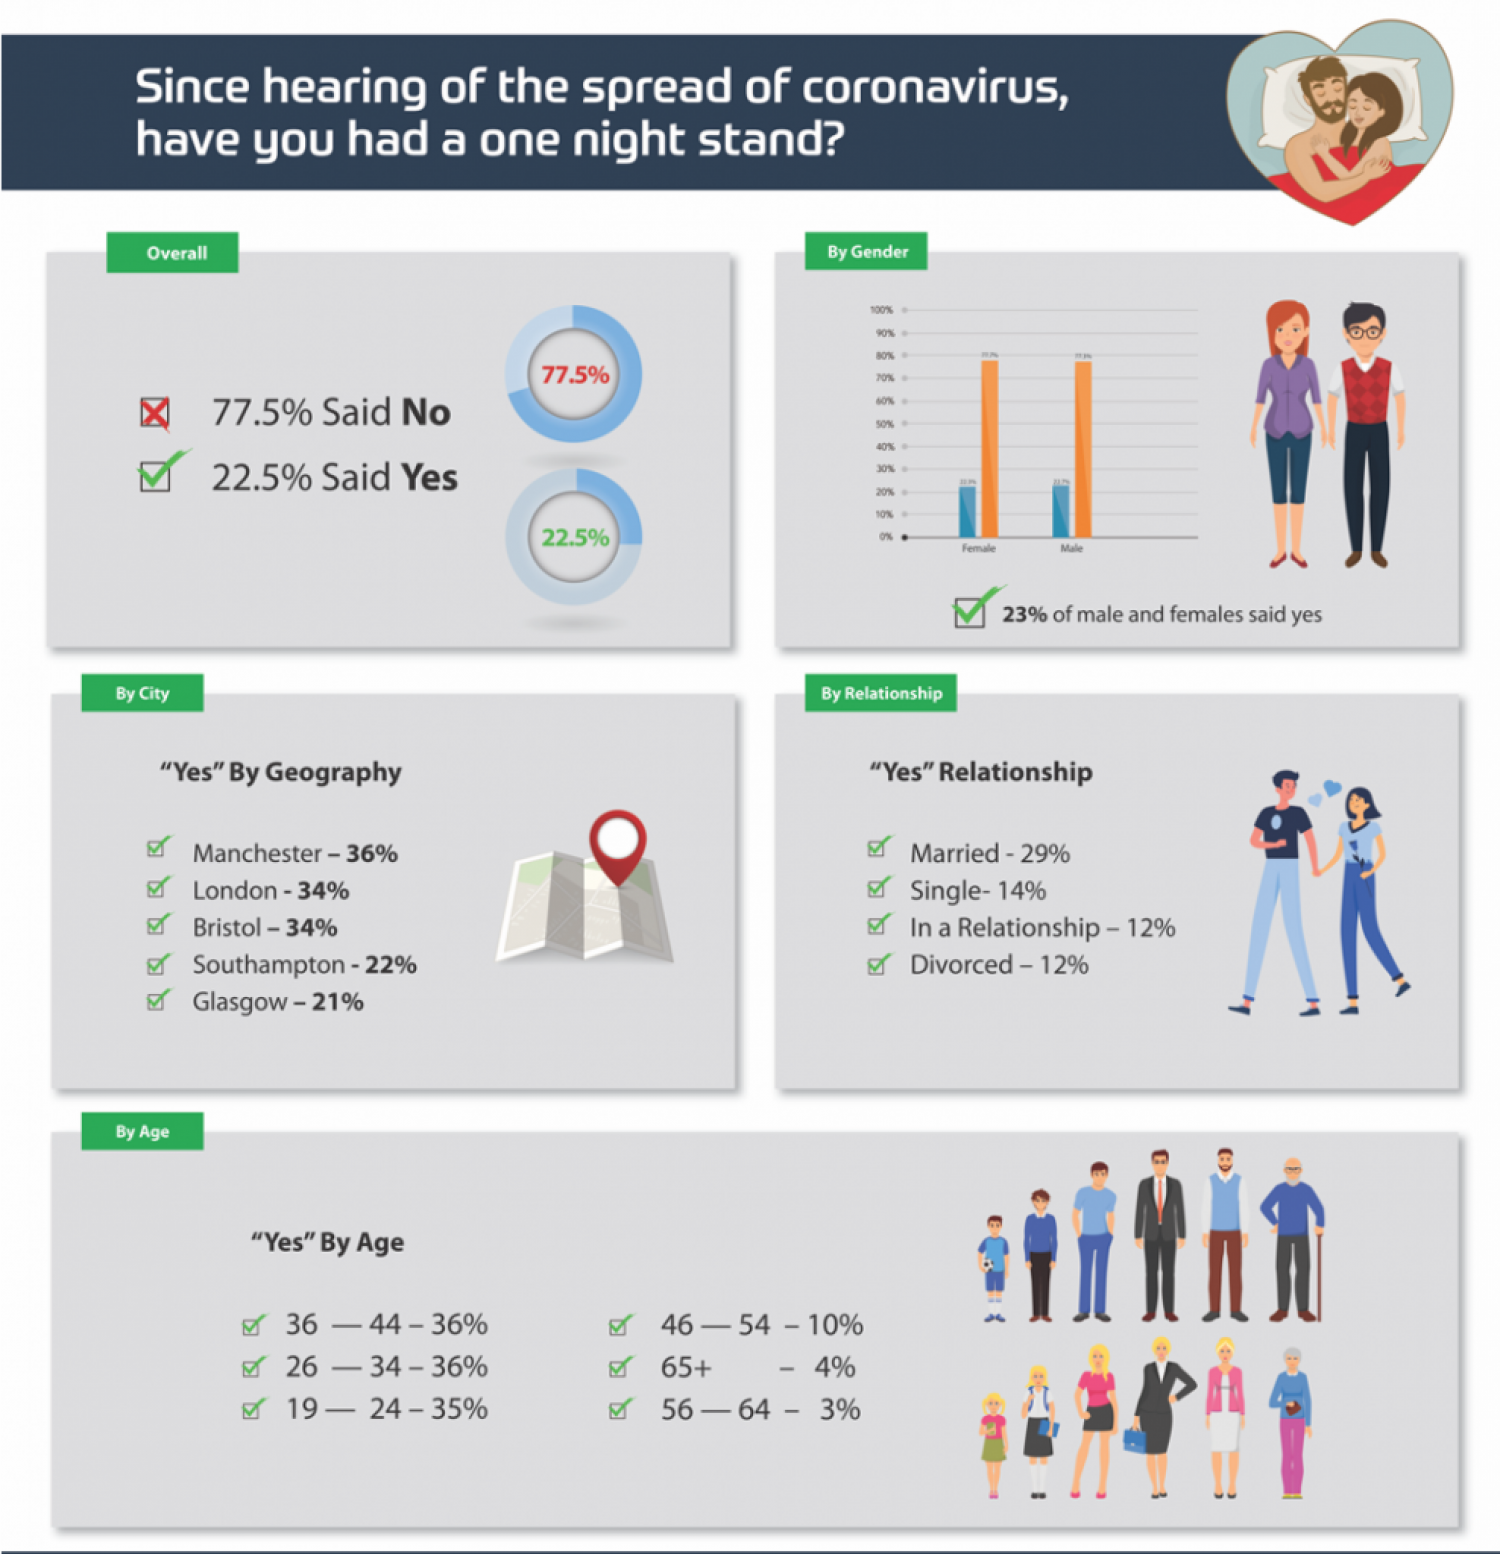 One Night Stands Since Coronavirus Outbreak Infographic